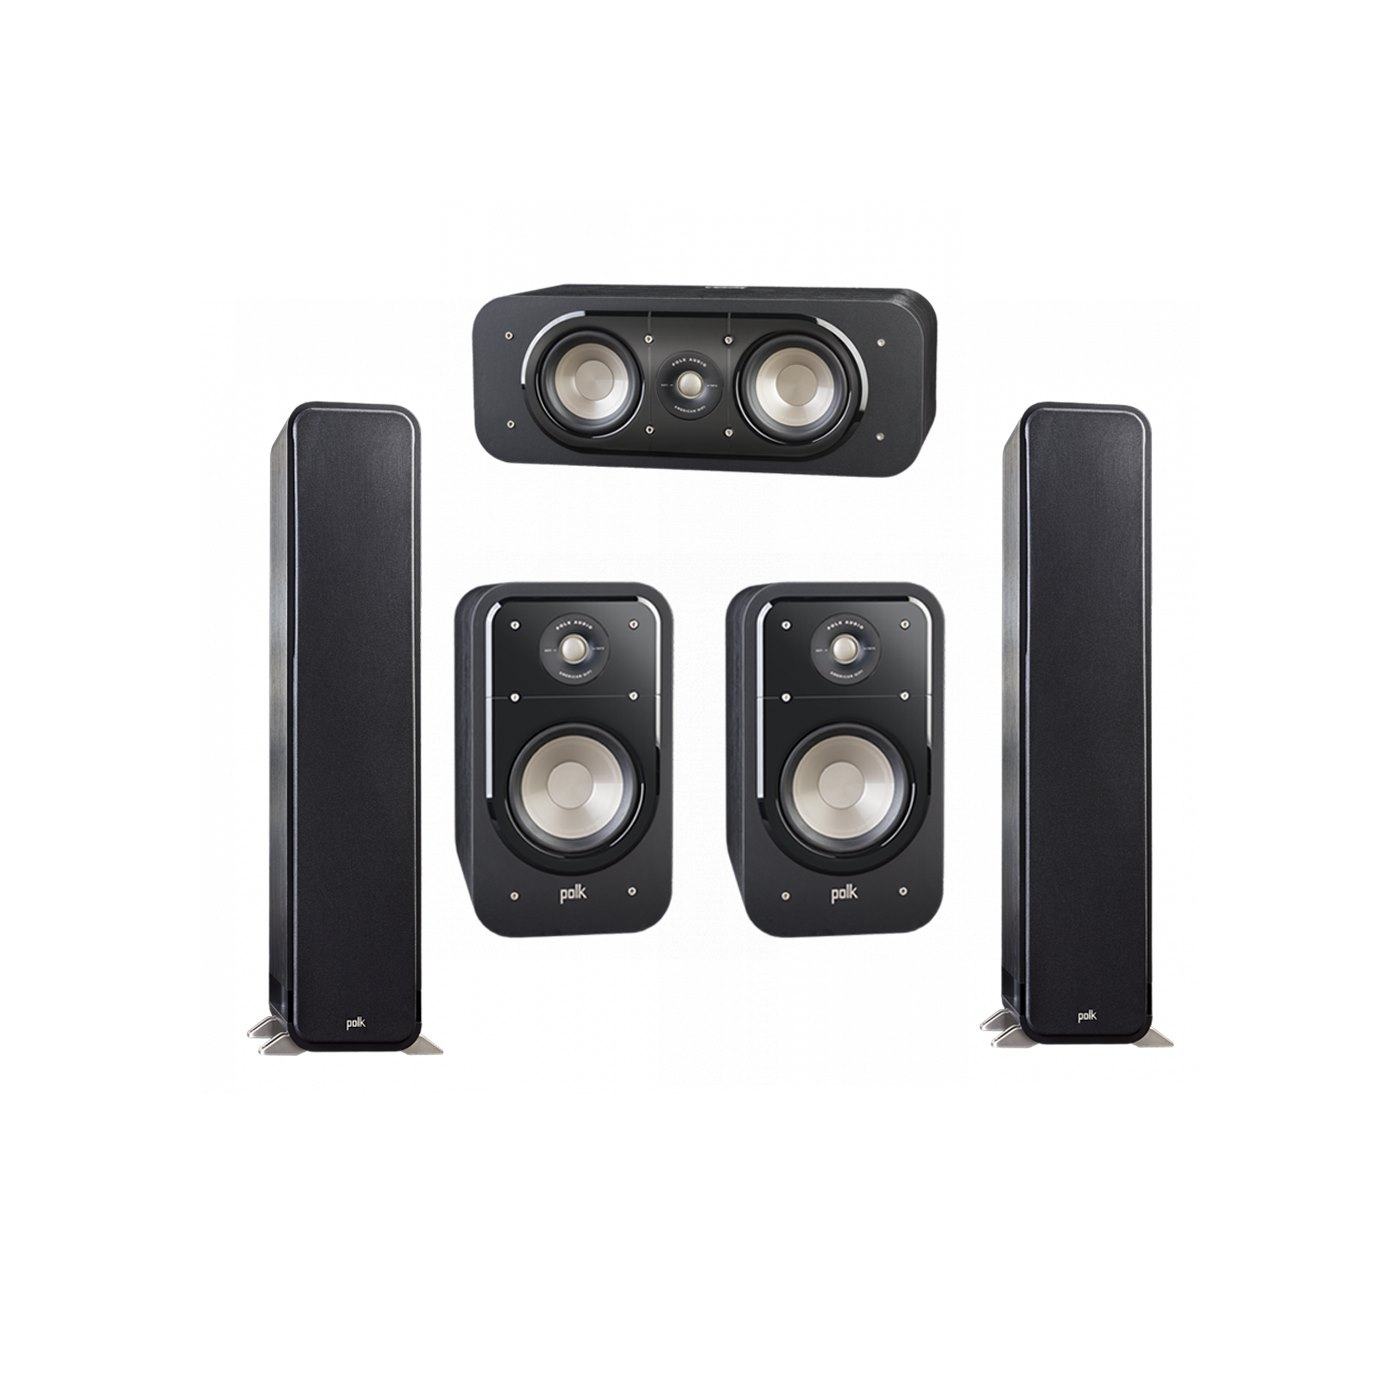 Polk Audio Signature 5.0 System with 2 S55 Tower Speaker, 1 Polk S30 Center Speaker, 2 Polk S20 Bookshelf Speaker